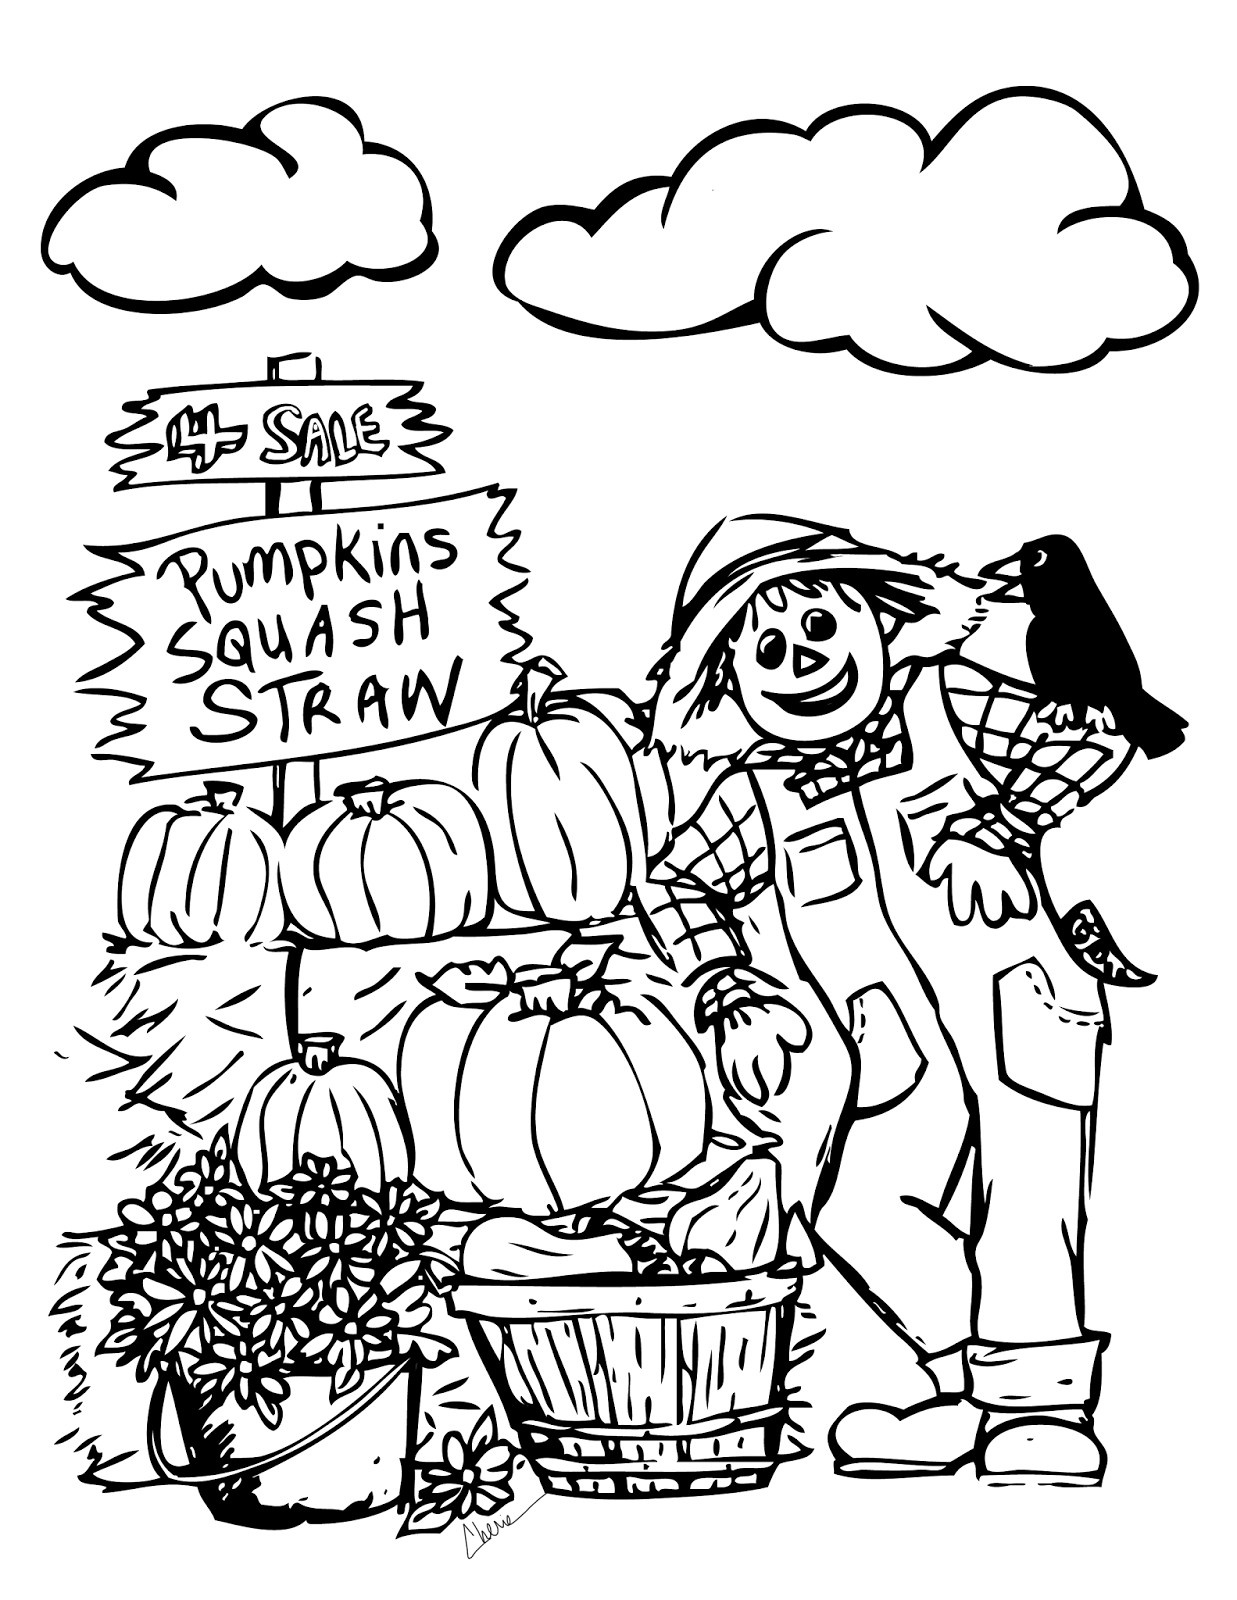 Free Printable Fall Coloring Pages For Kids - Best Coloring Pages - Free Printable Fall Harvest Coloring Pages